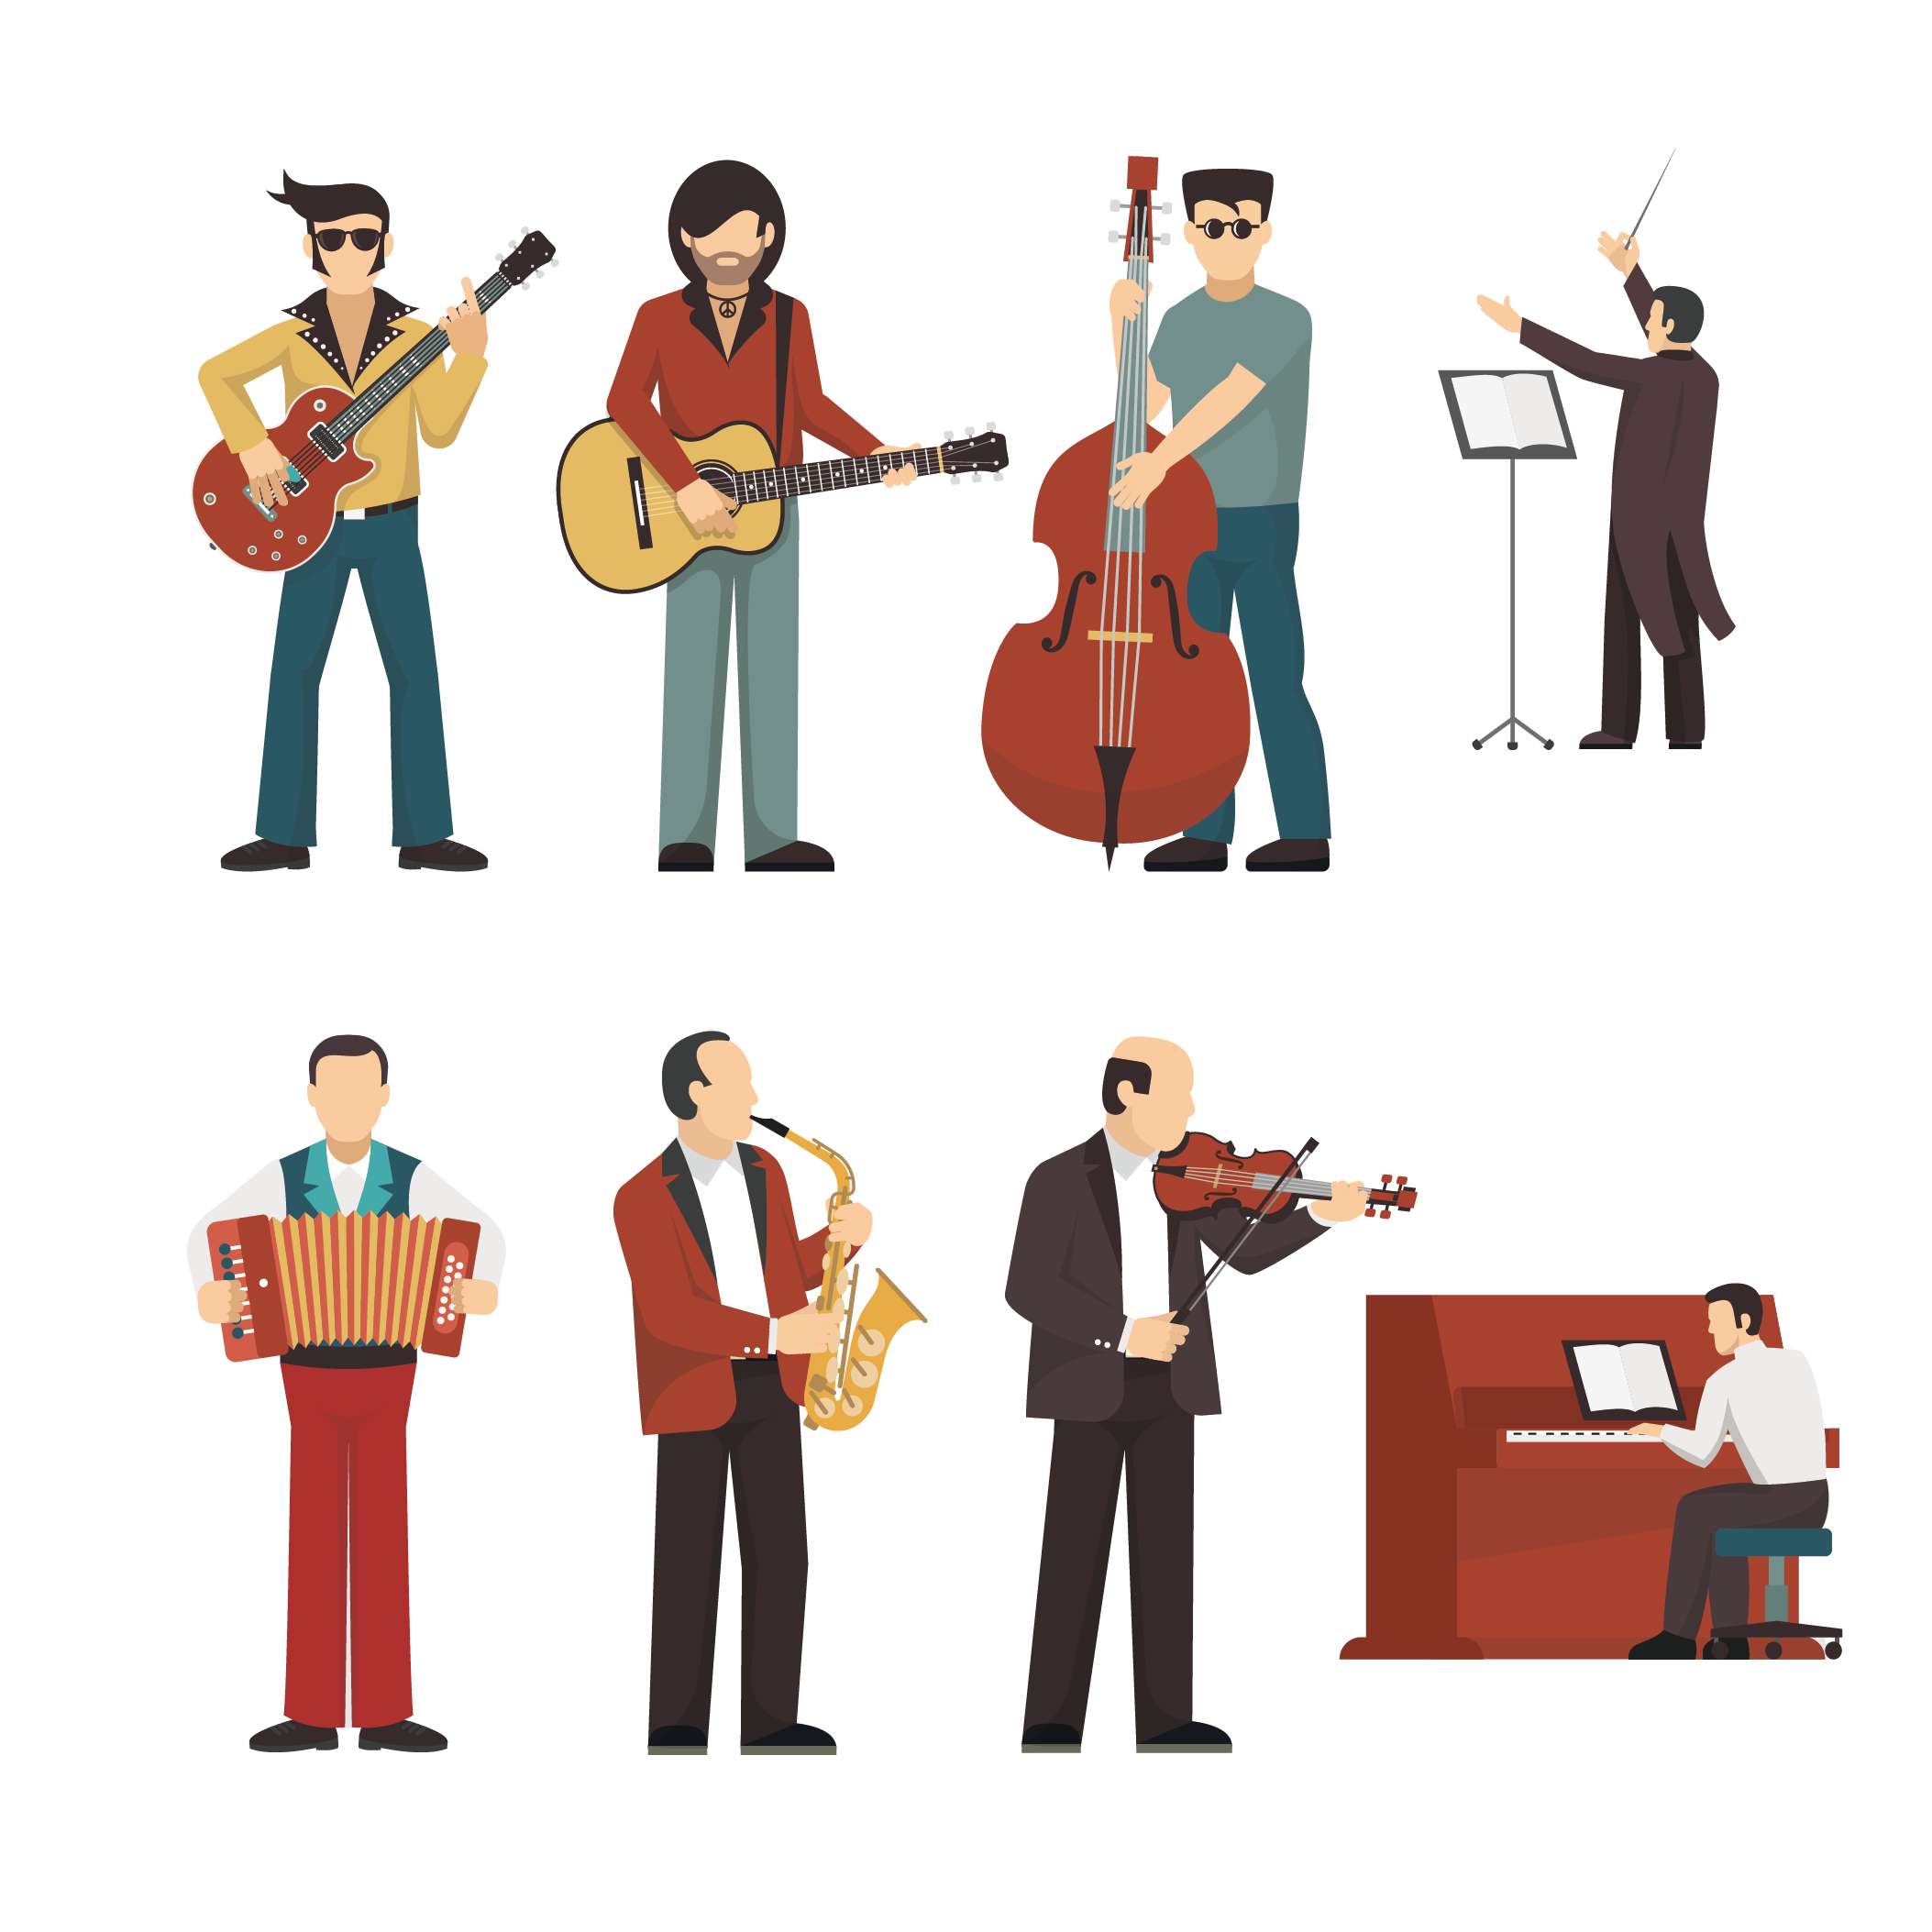 Musical instrument illustration people. Musician clipart music american